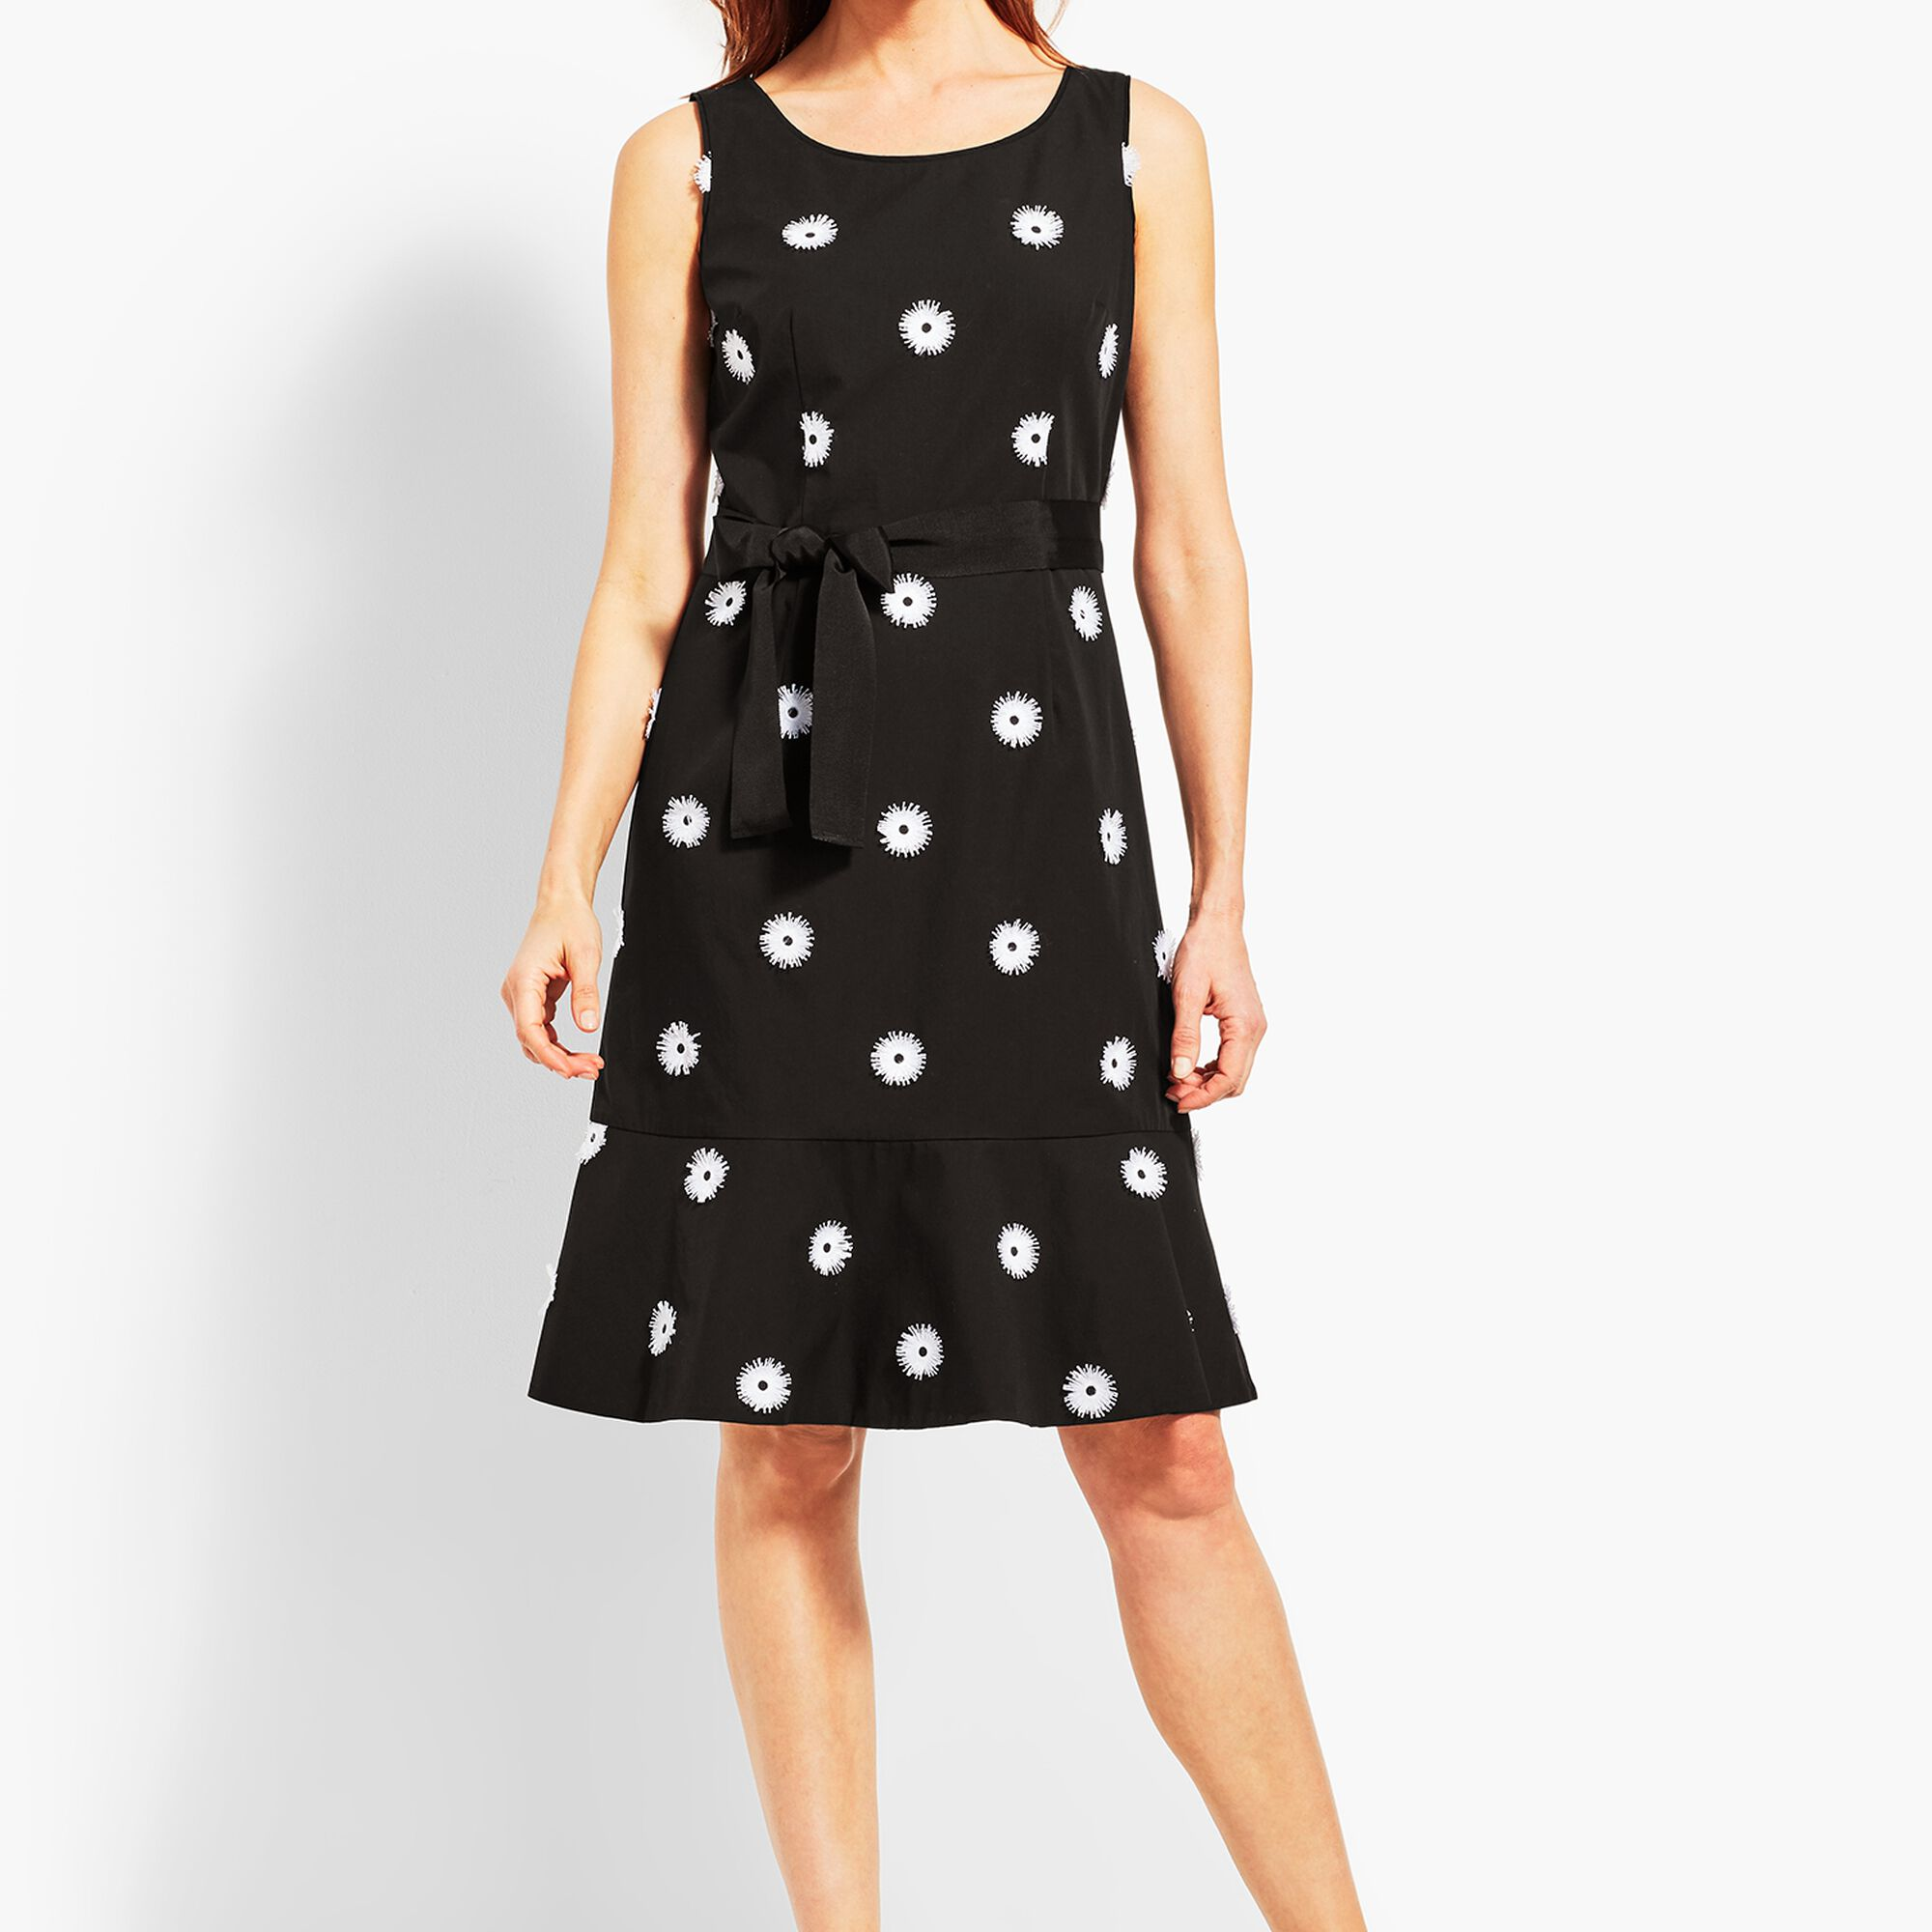 Flower Applique Fit And Flare Dress Talbots